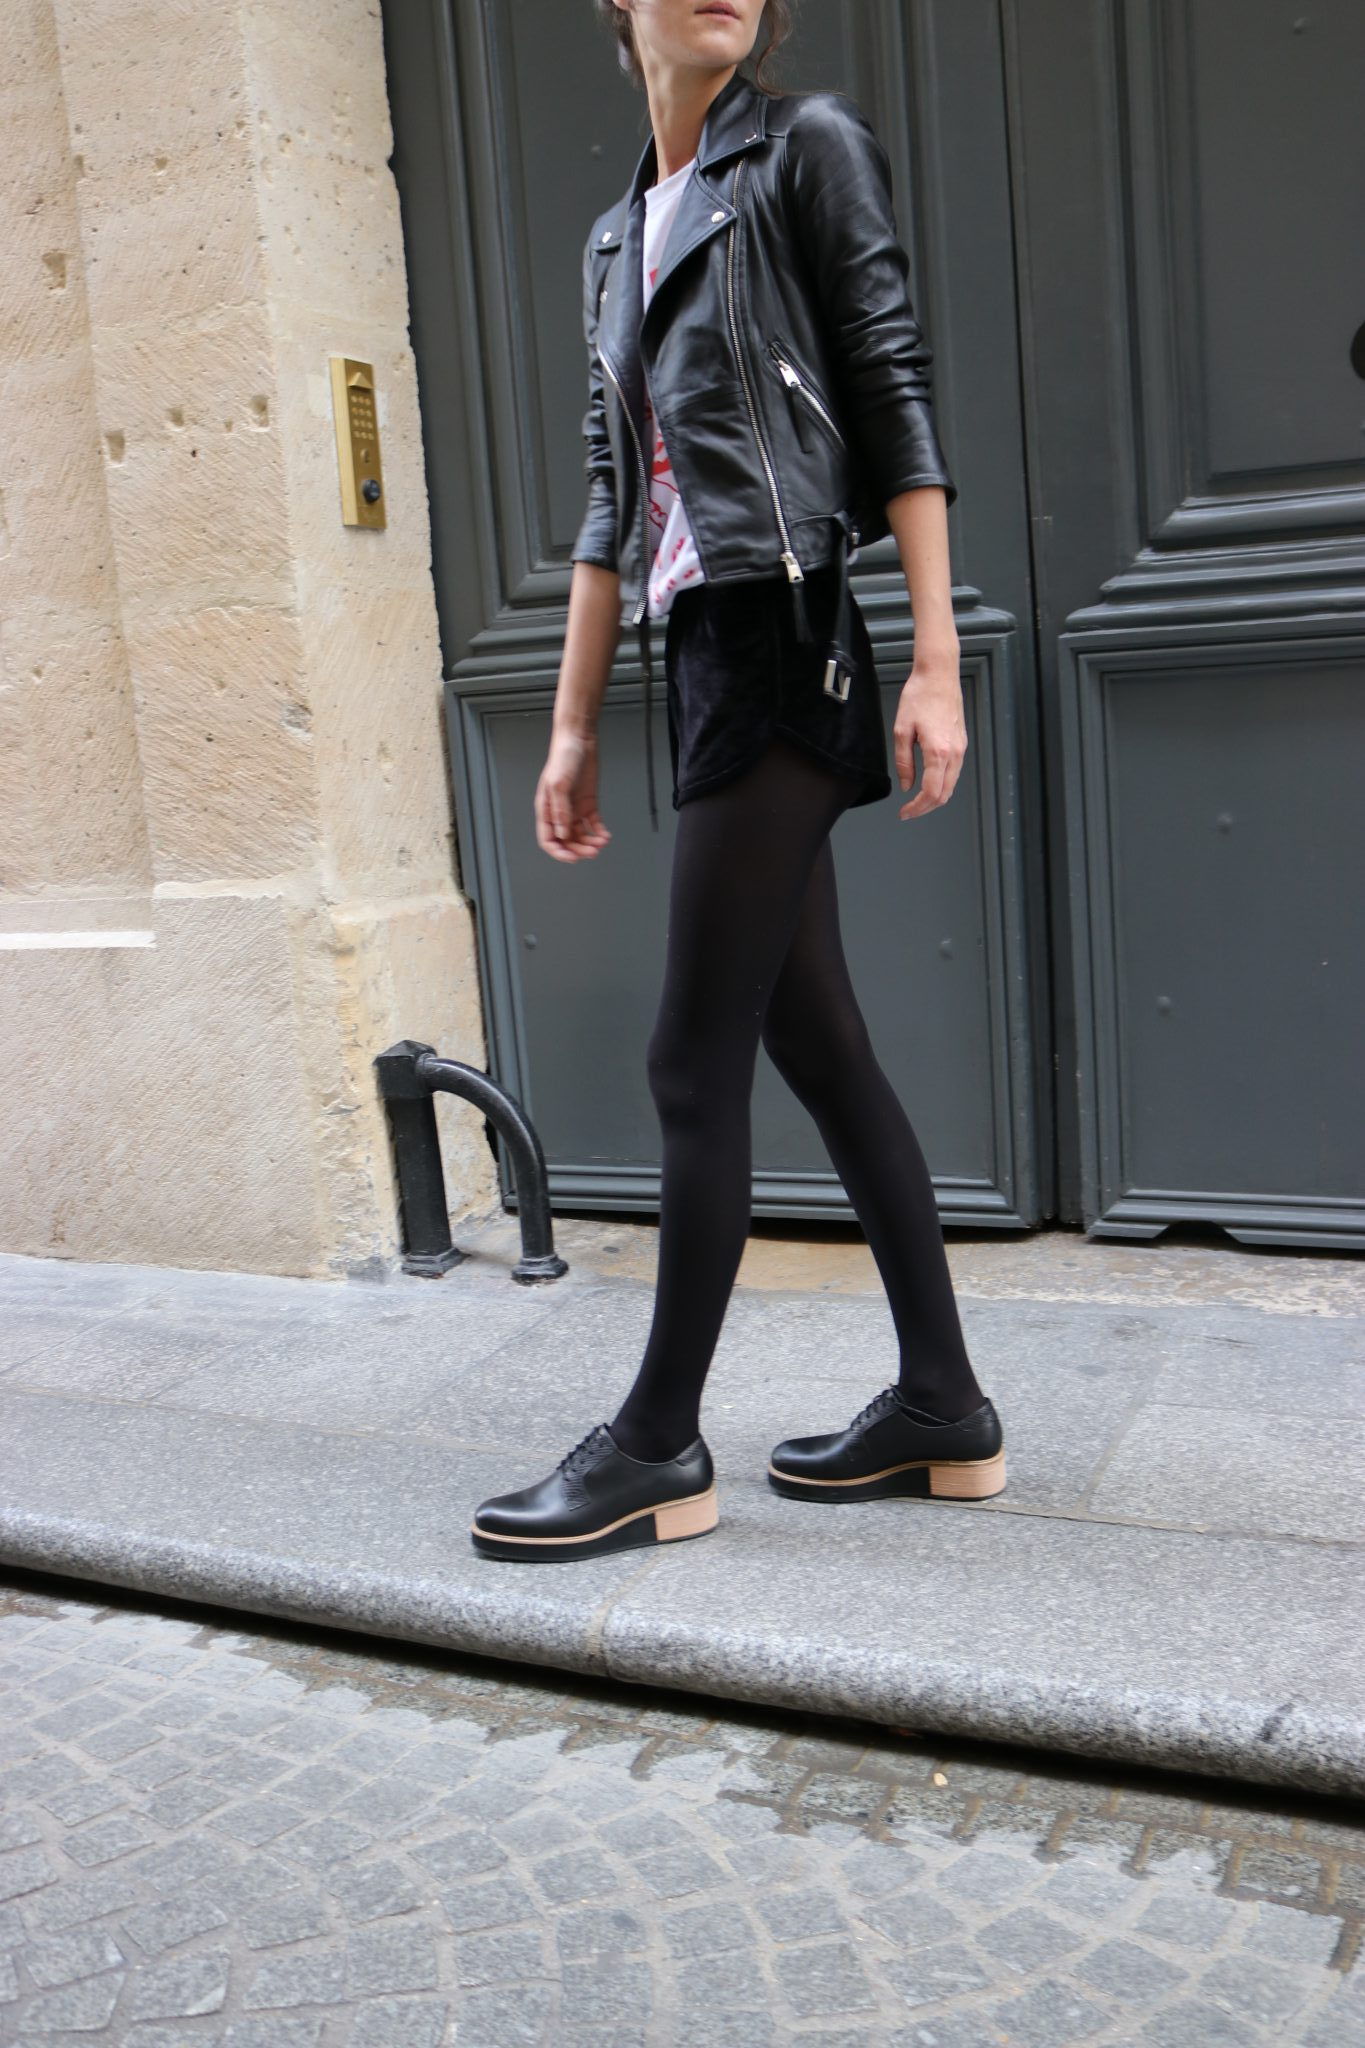 Subtle Street Style #8 : Paris Insider, Subtle Shoes